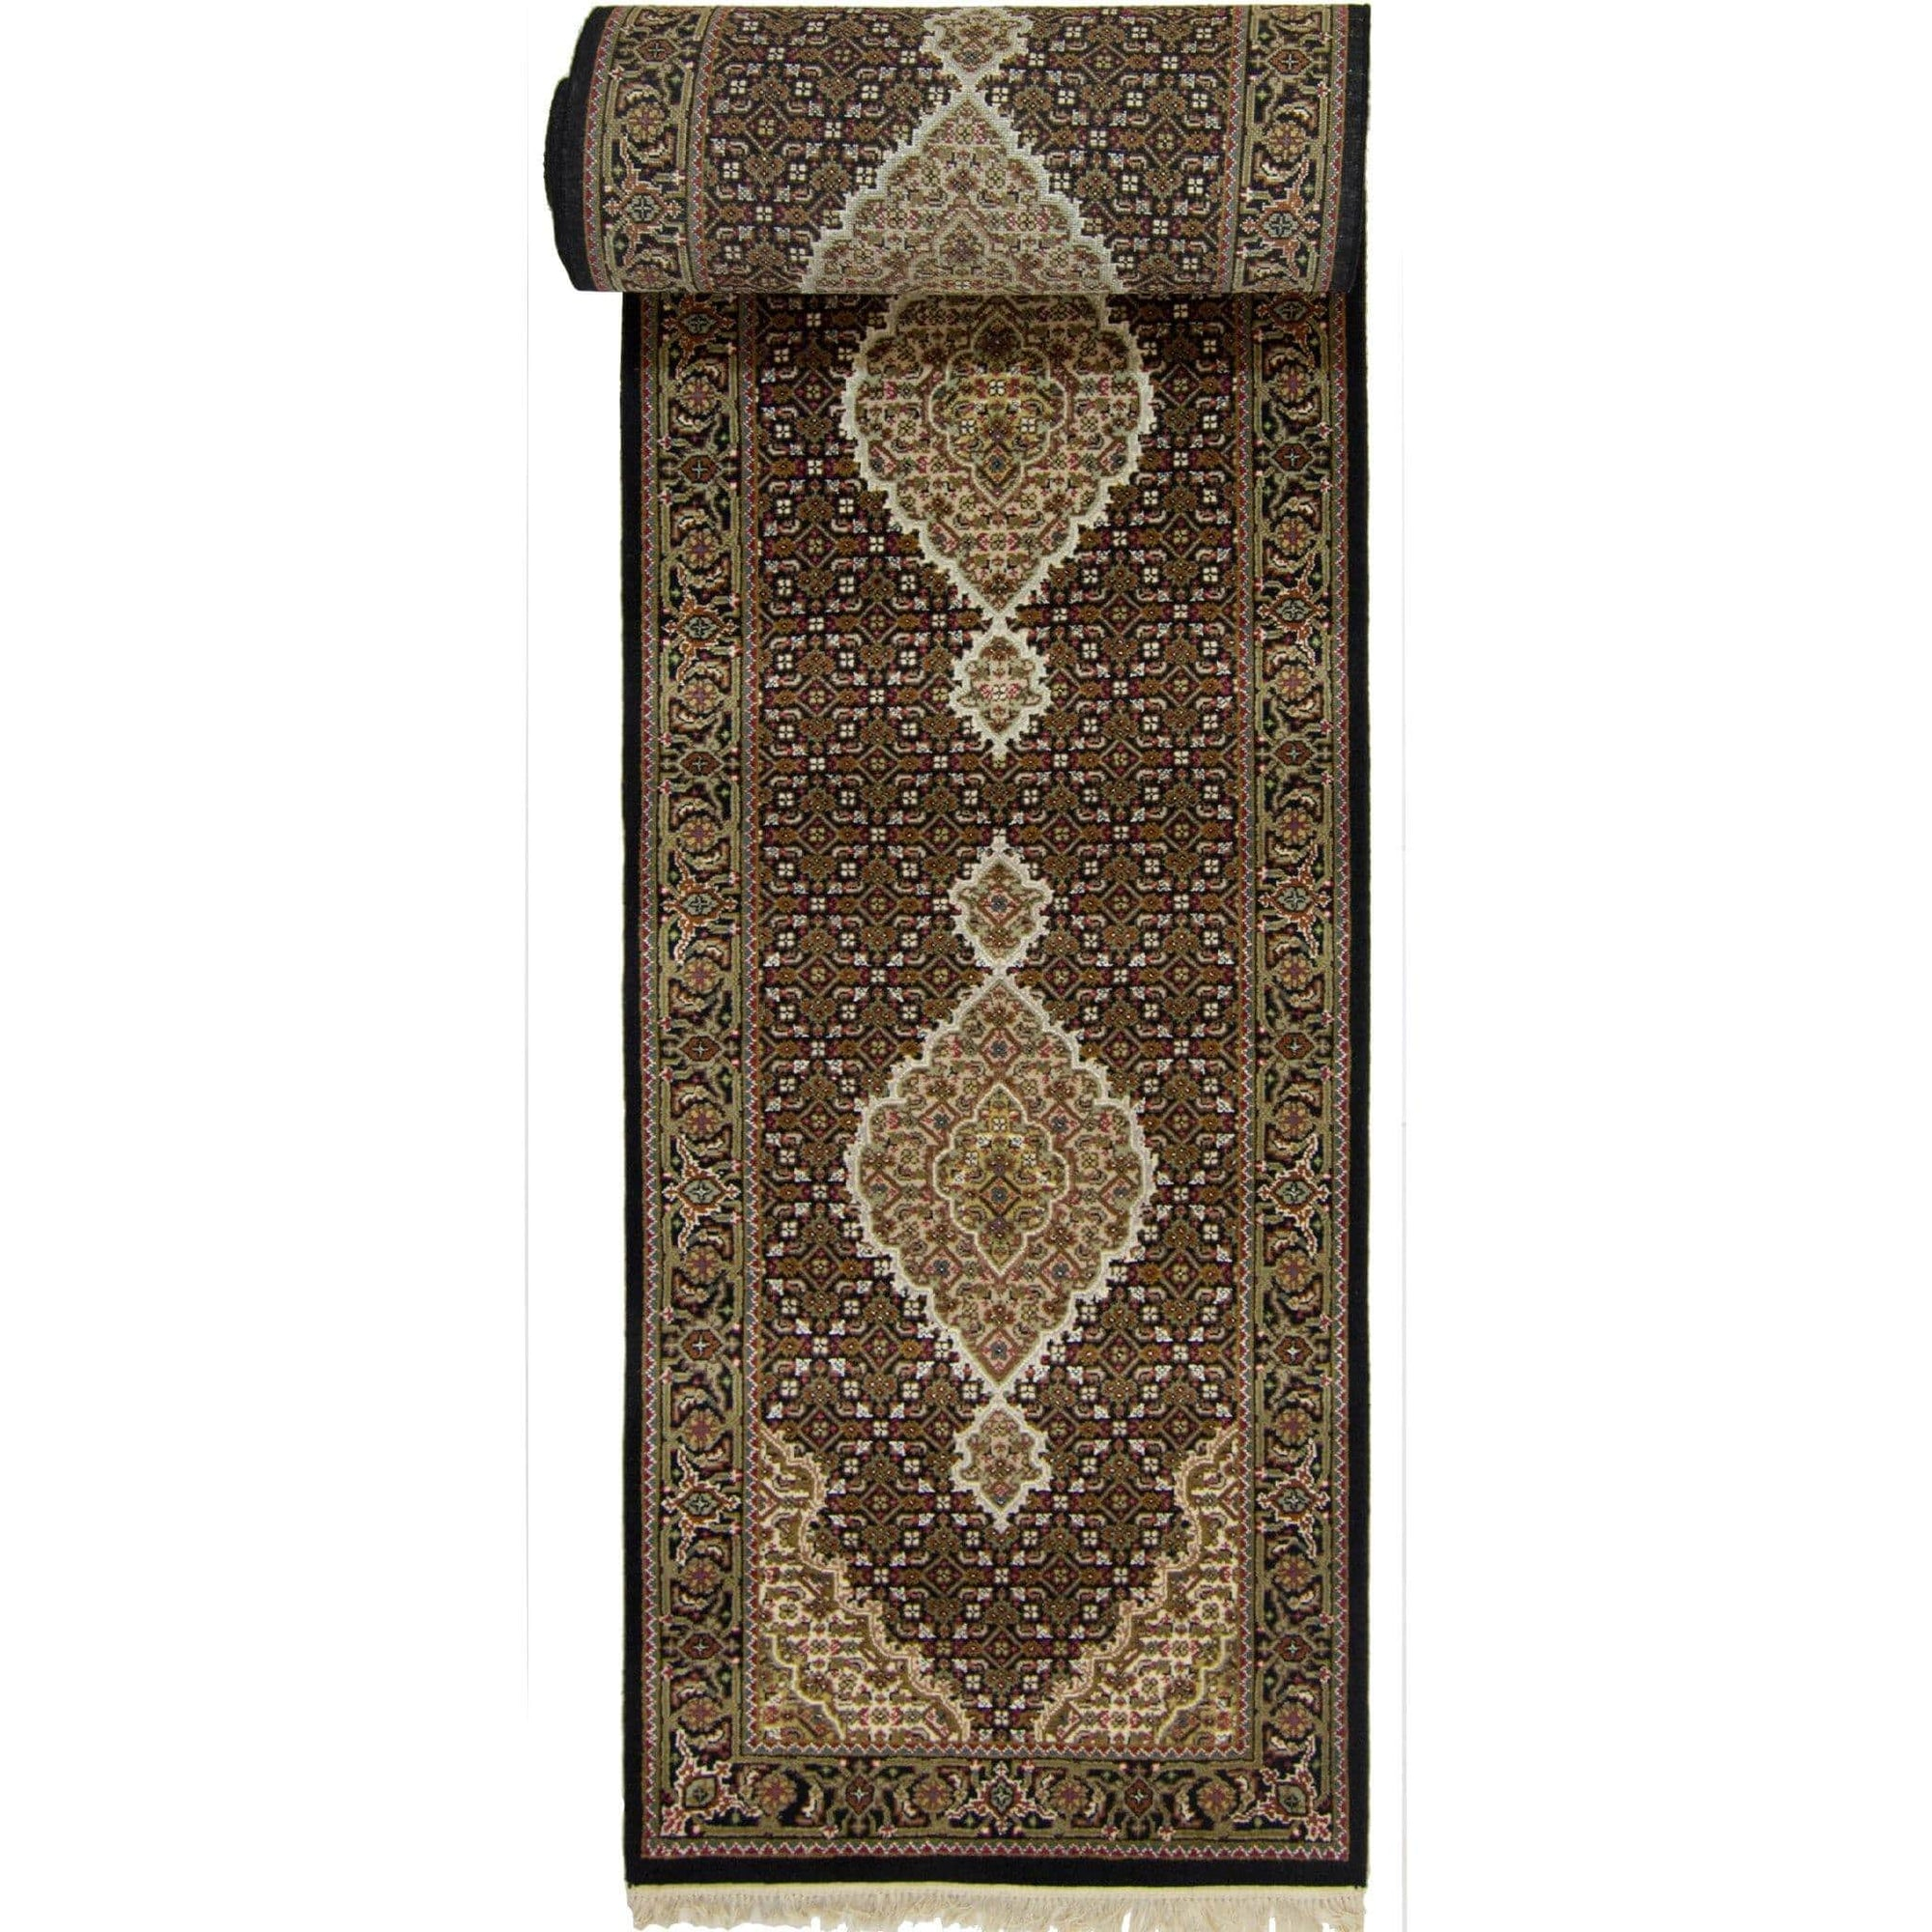 Super Fine Hand-knotted Wool and Silk Tabriz - Mahi Runner 82 cm x 402 cm Persian-Rug | House-of-Haghi | NewMarket | Auckland | NZ | Handmade Persian Rugs | Hand Knotted Persian Rugs